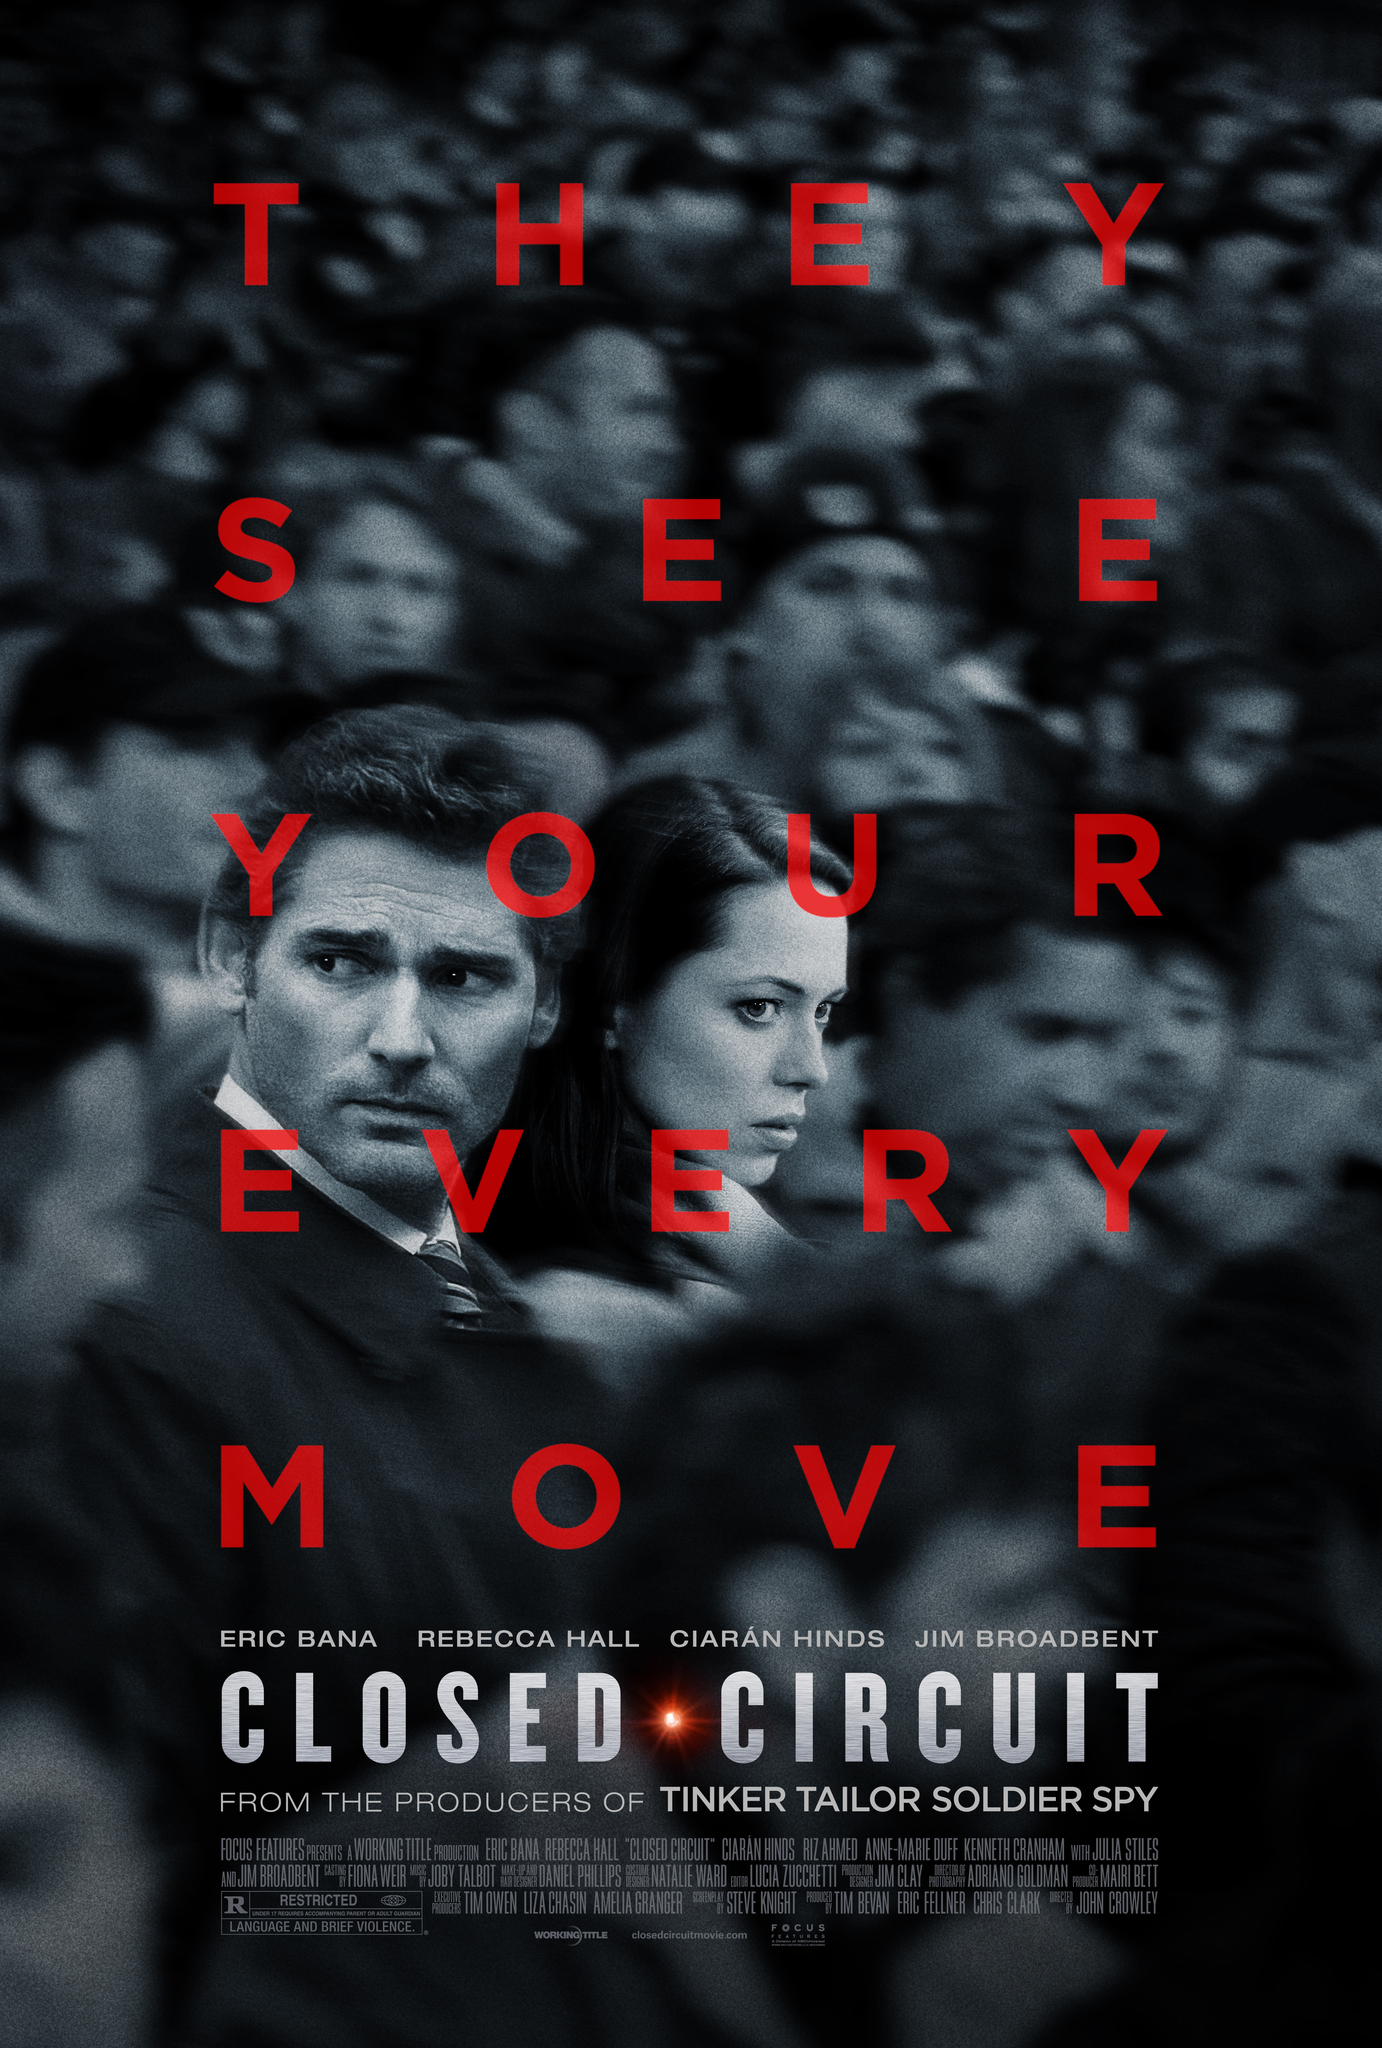 Closed Circuit 2013 Imdb More Display Circuits Find Dave S By Category Email